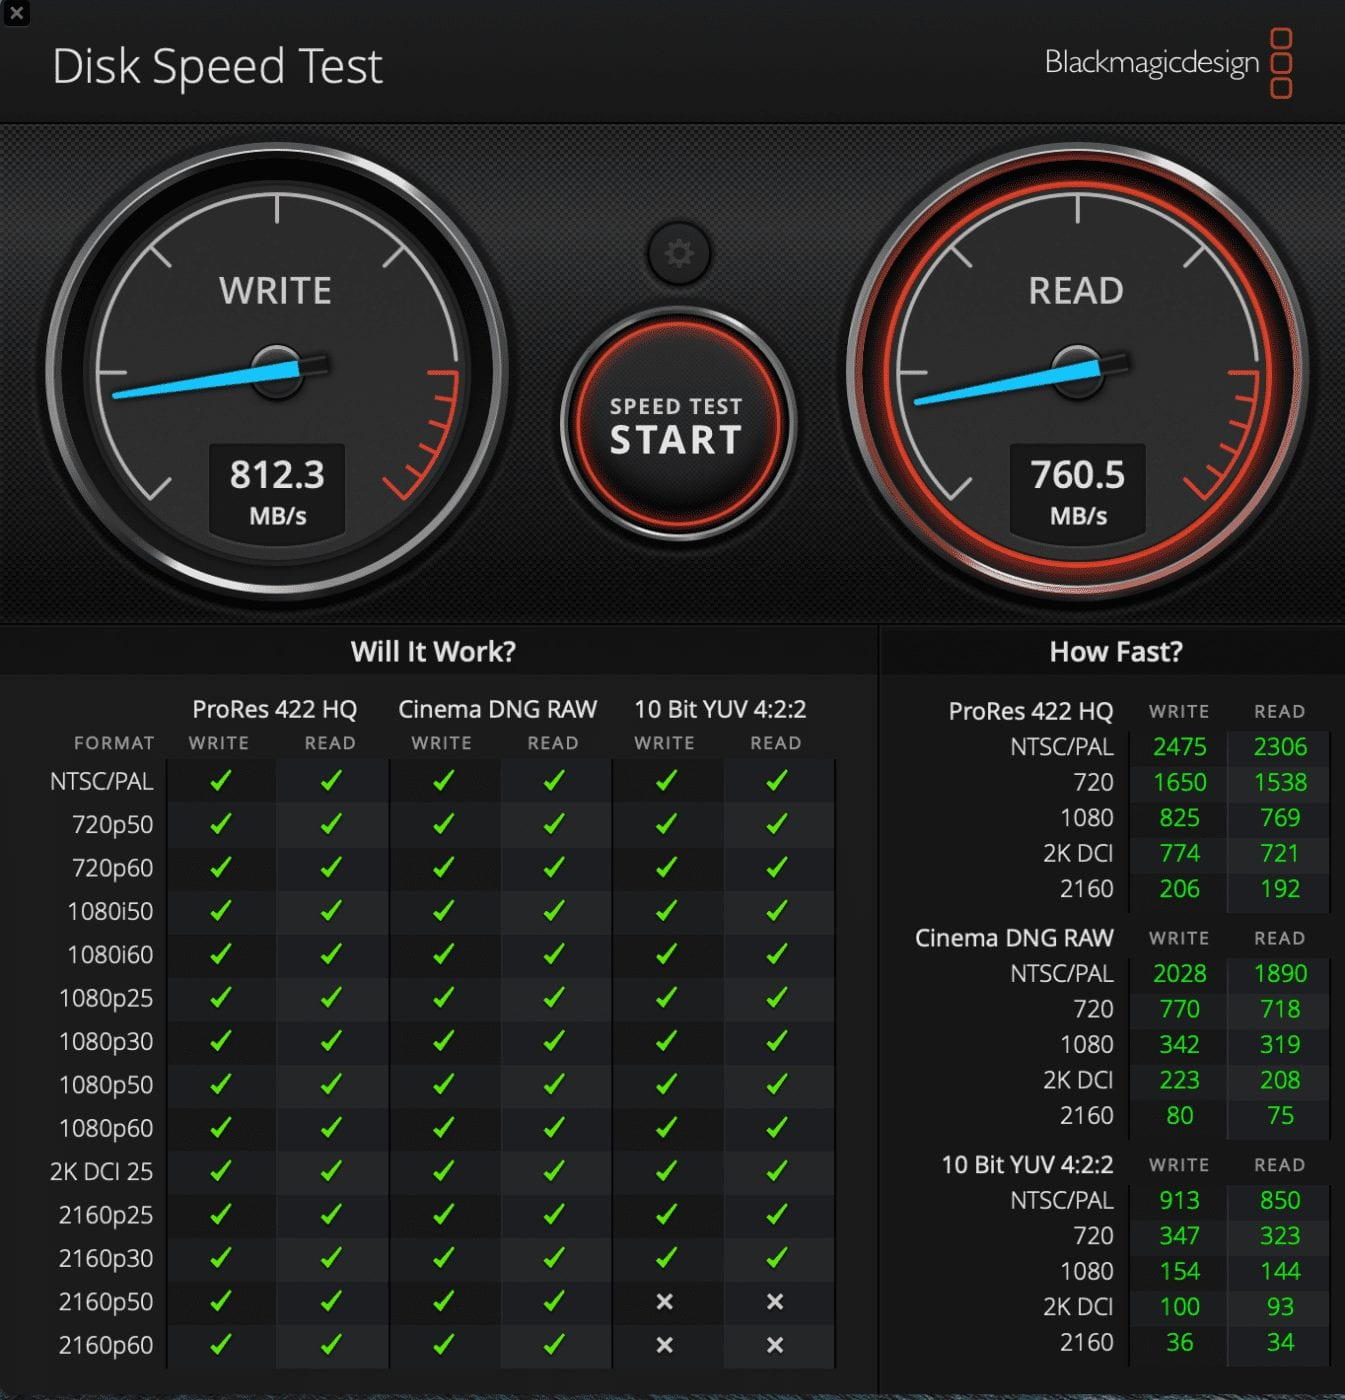 Results from Blackmagic Disk Speed Test for 2020 M1 MacBook Air